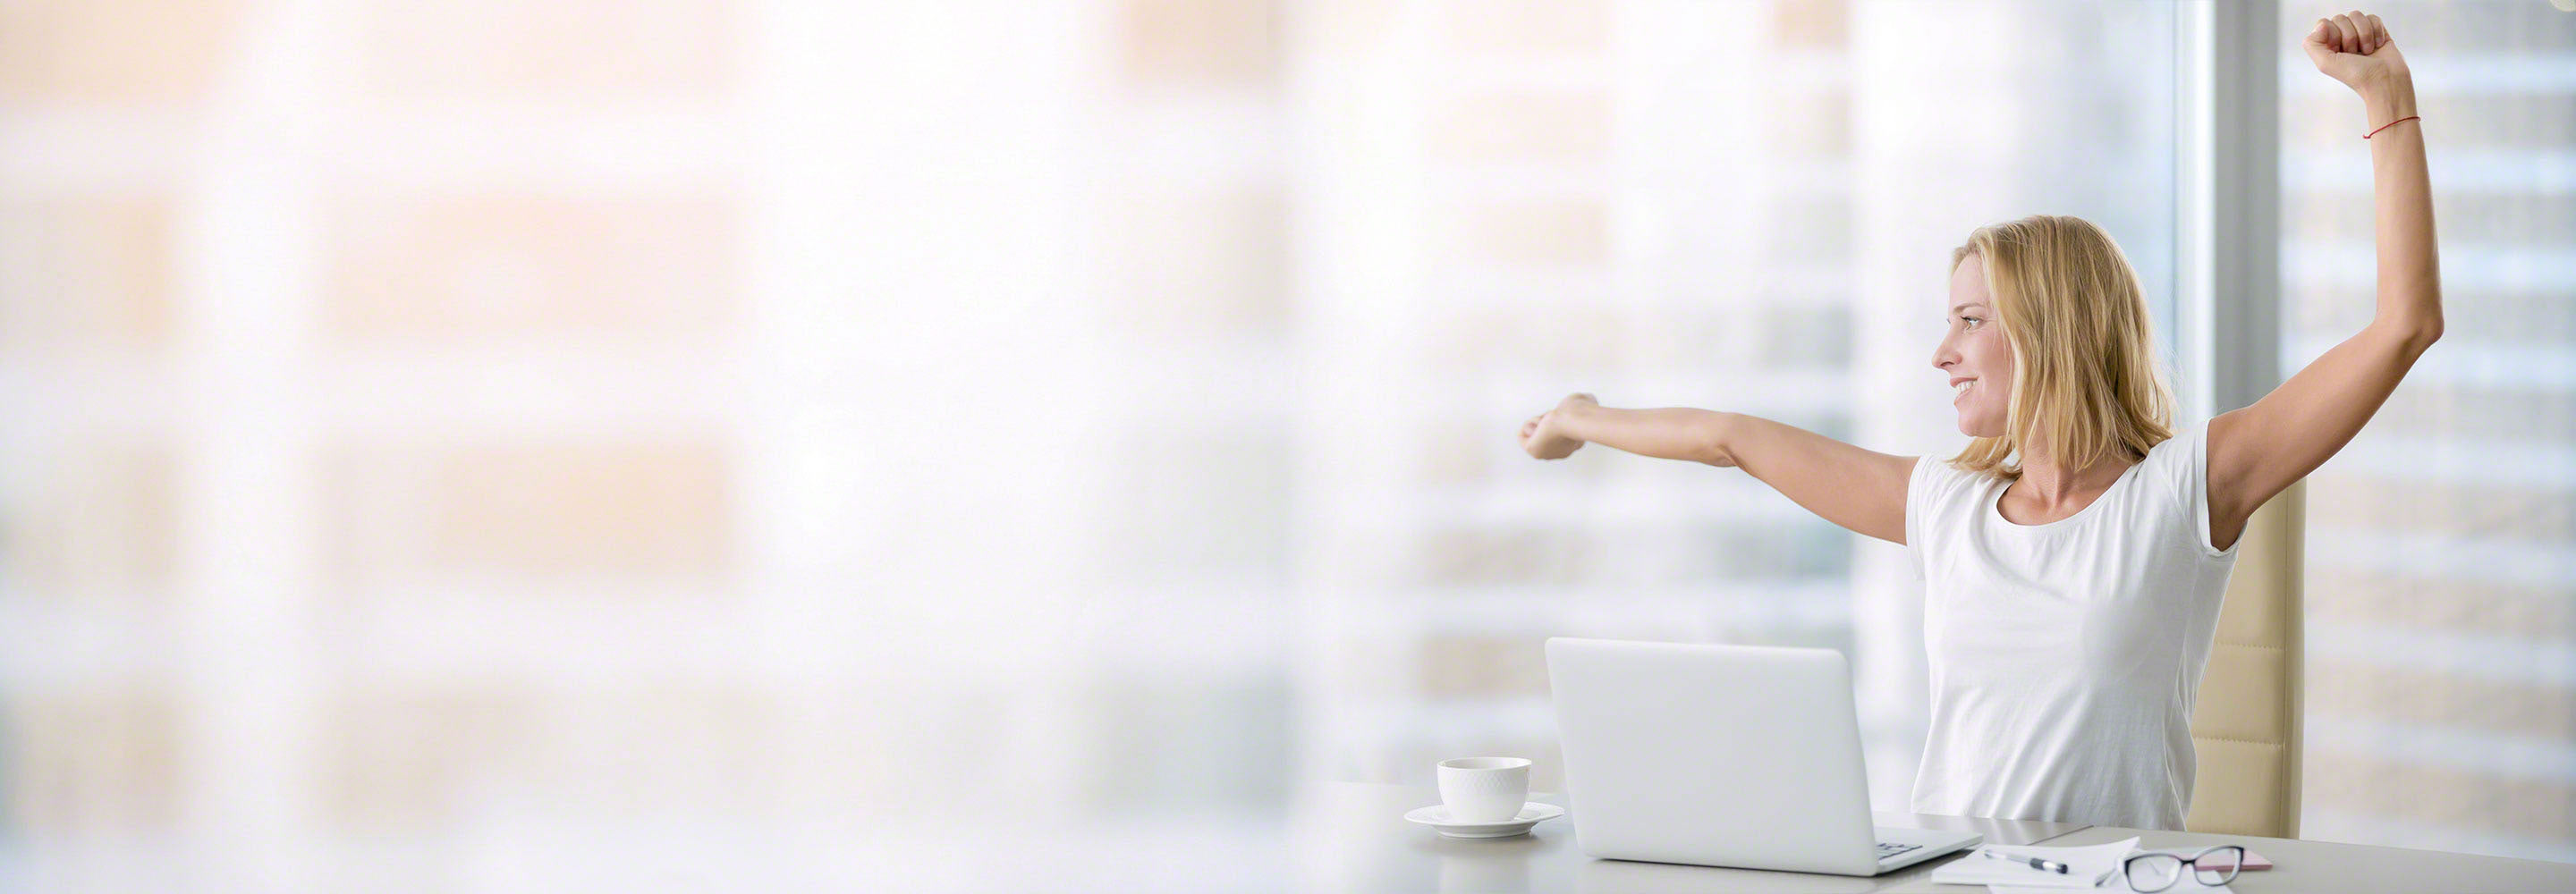 Woman looking out office window while stretching